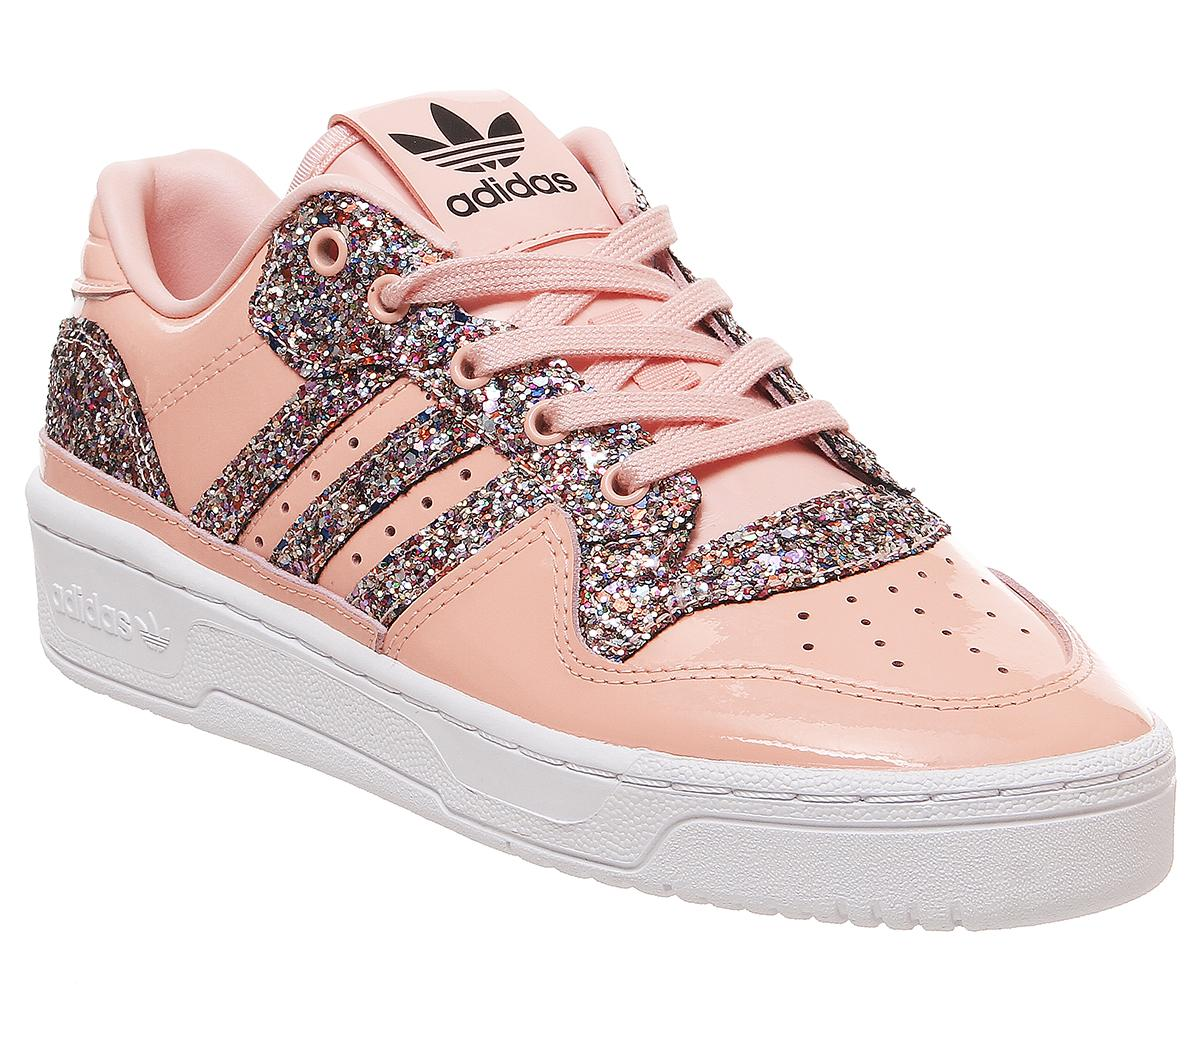 ADIDAS Rivalry Low glitter